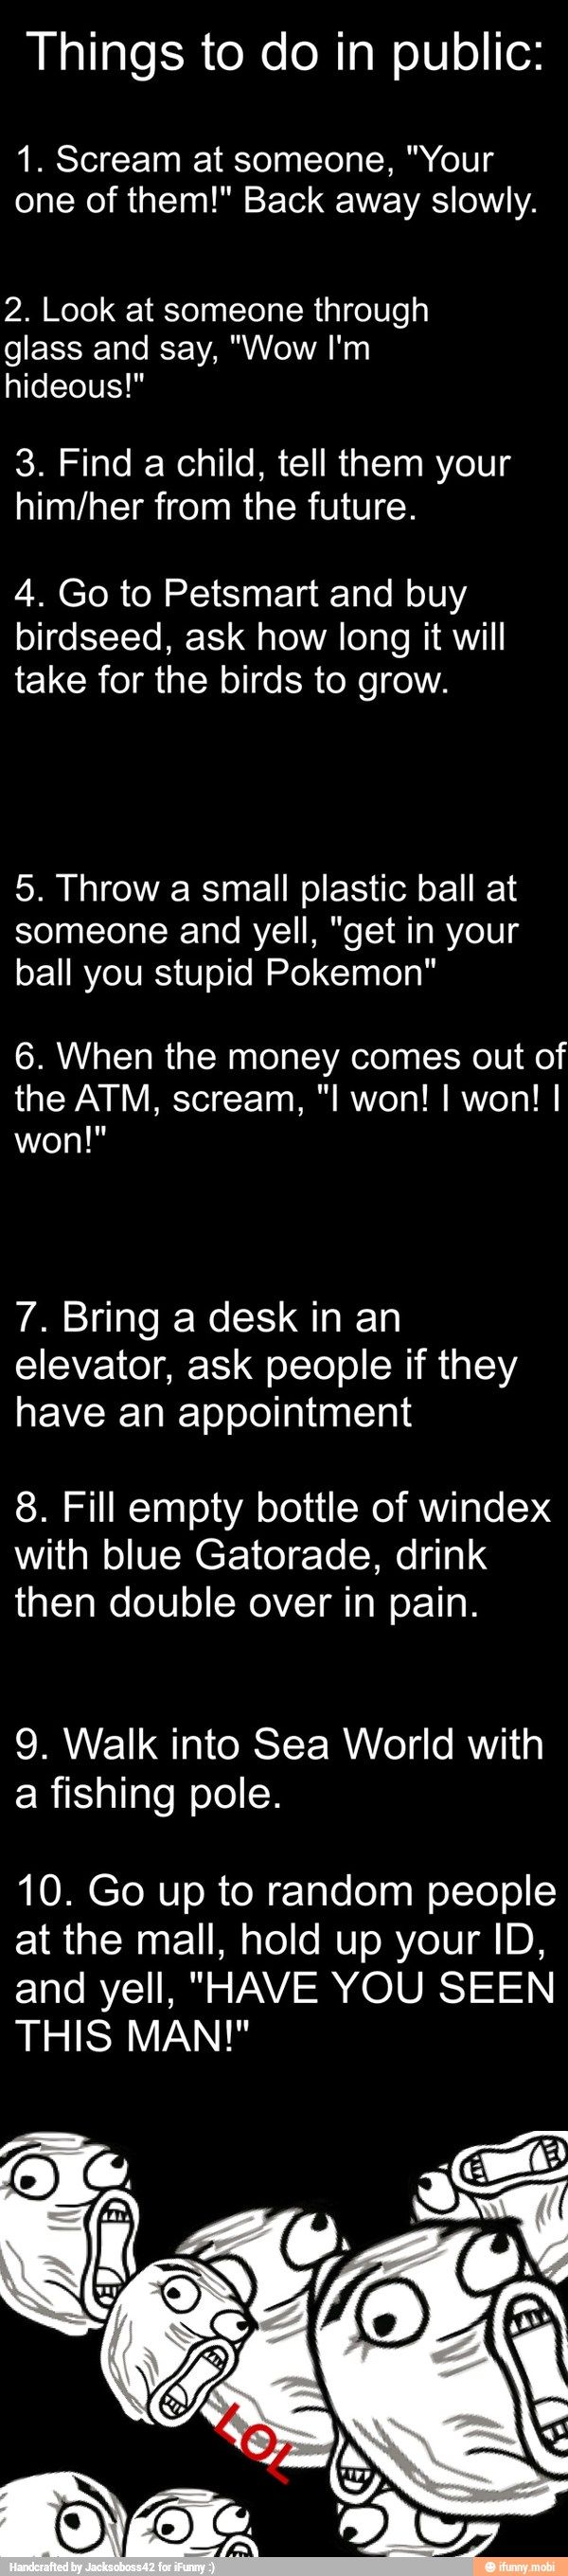 Best Funny Pranks Ideas On Pinterest Pranks Ideas Pranks - 21 hilarious text replacement pranks that will make you laugh way more than you should